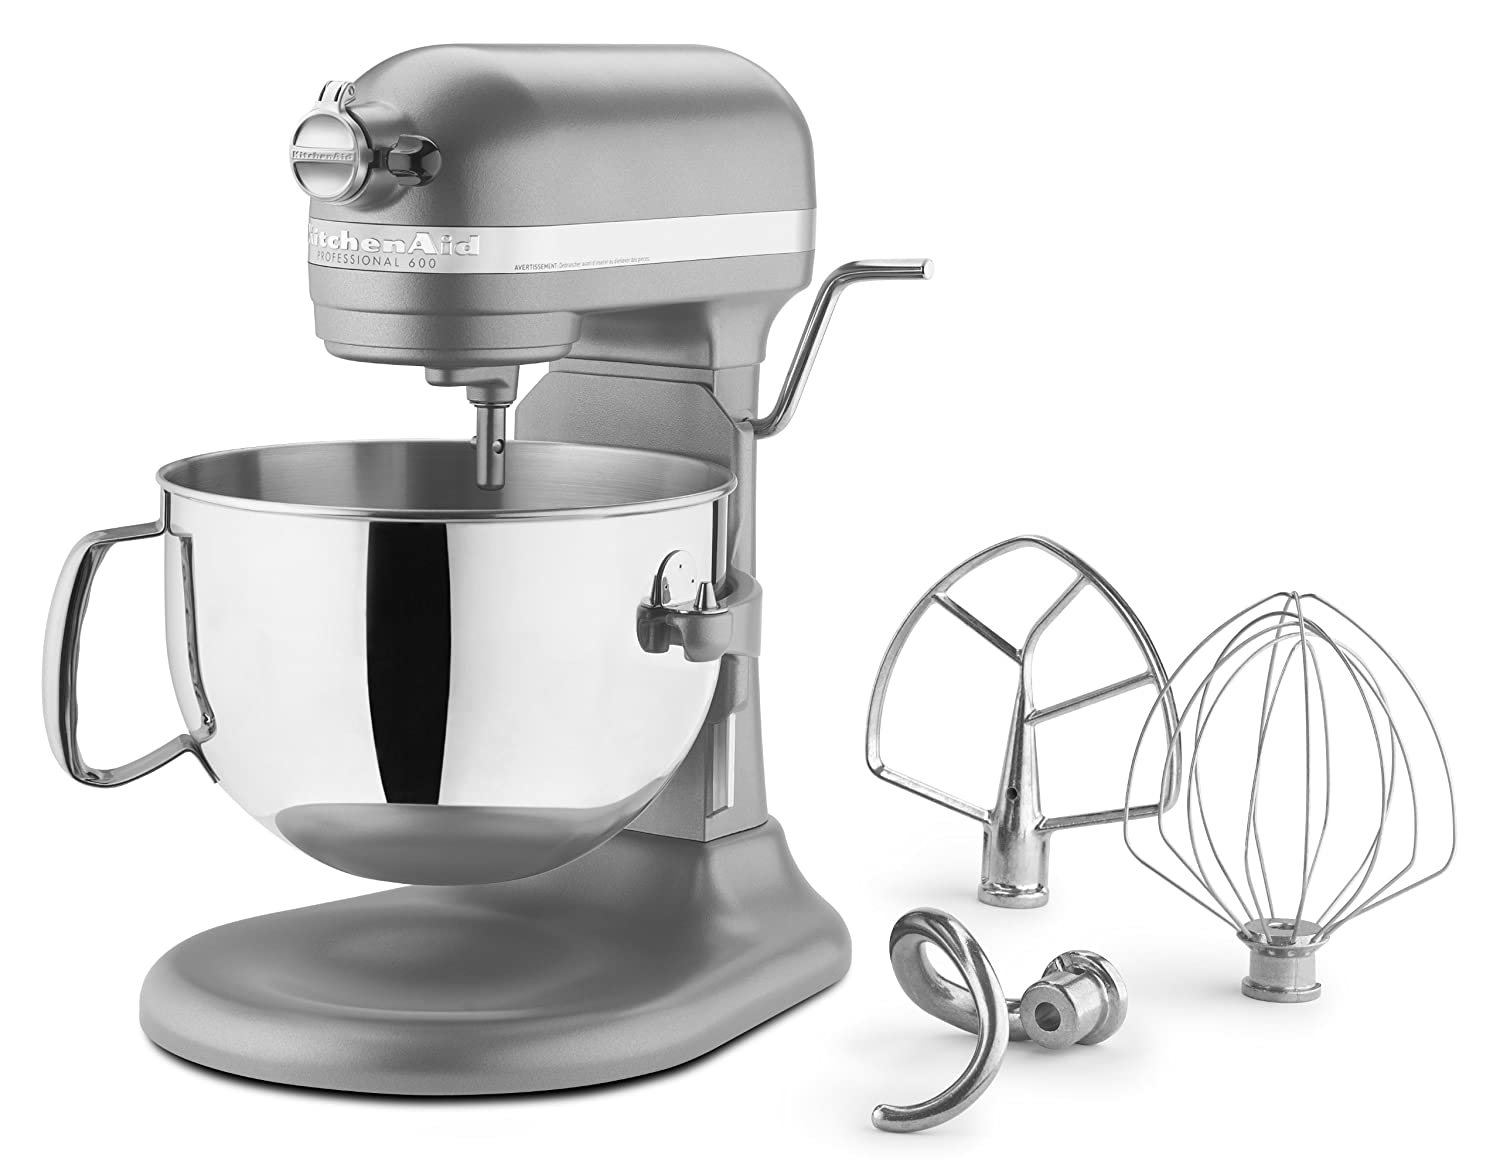 Kitchenaid KP26M1PSL Professional 600 Series 6-Quart Stand Mixer, Silver by: Amazon.es